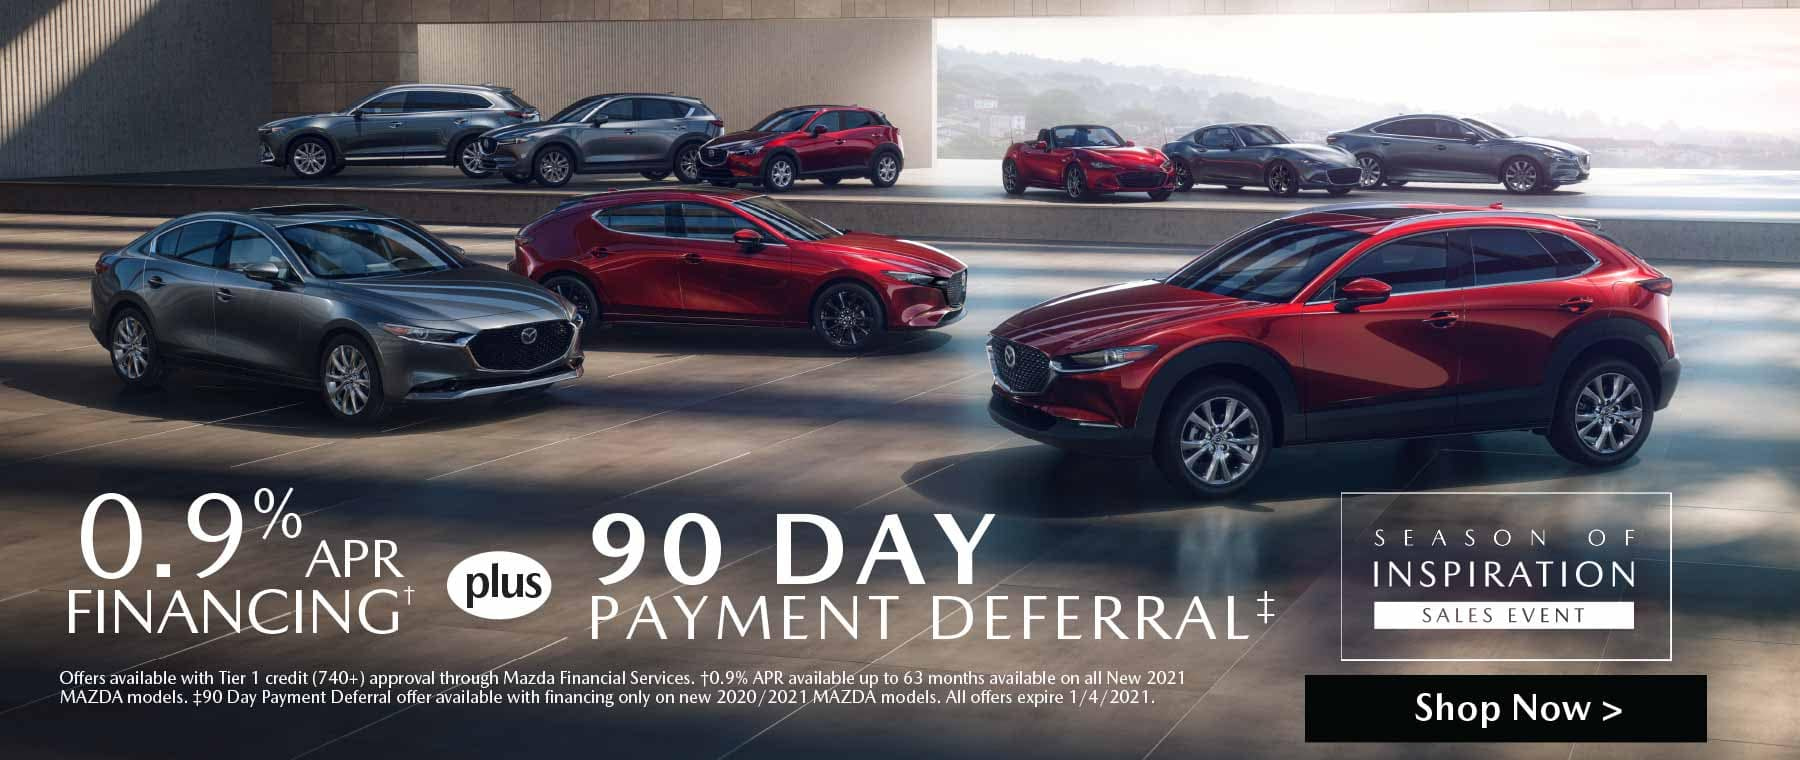 New APR Special Offer Garden City Mazda NY